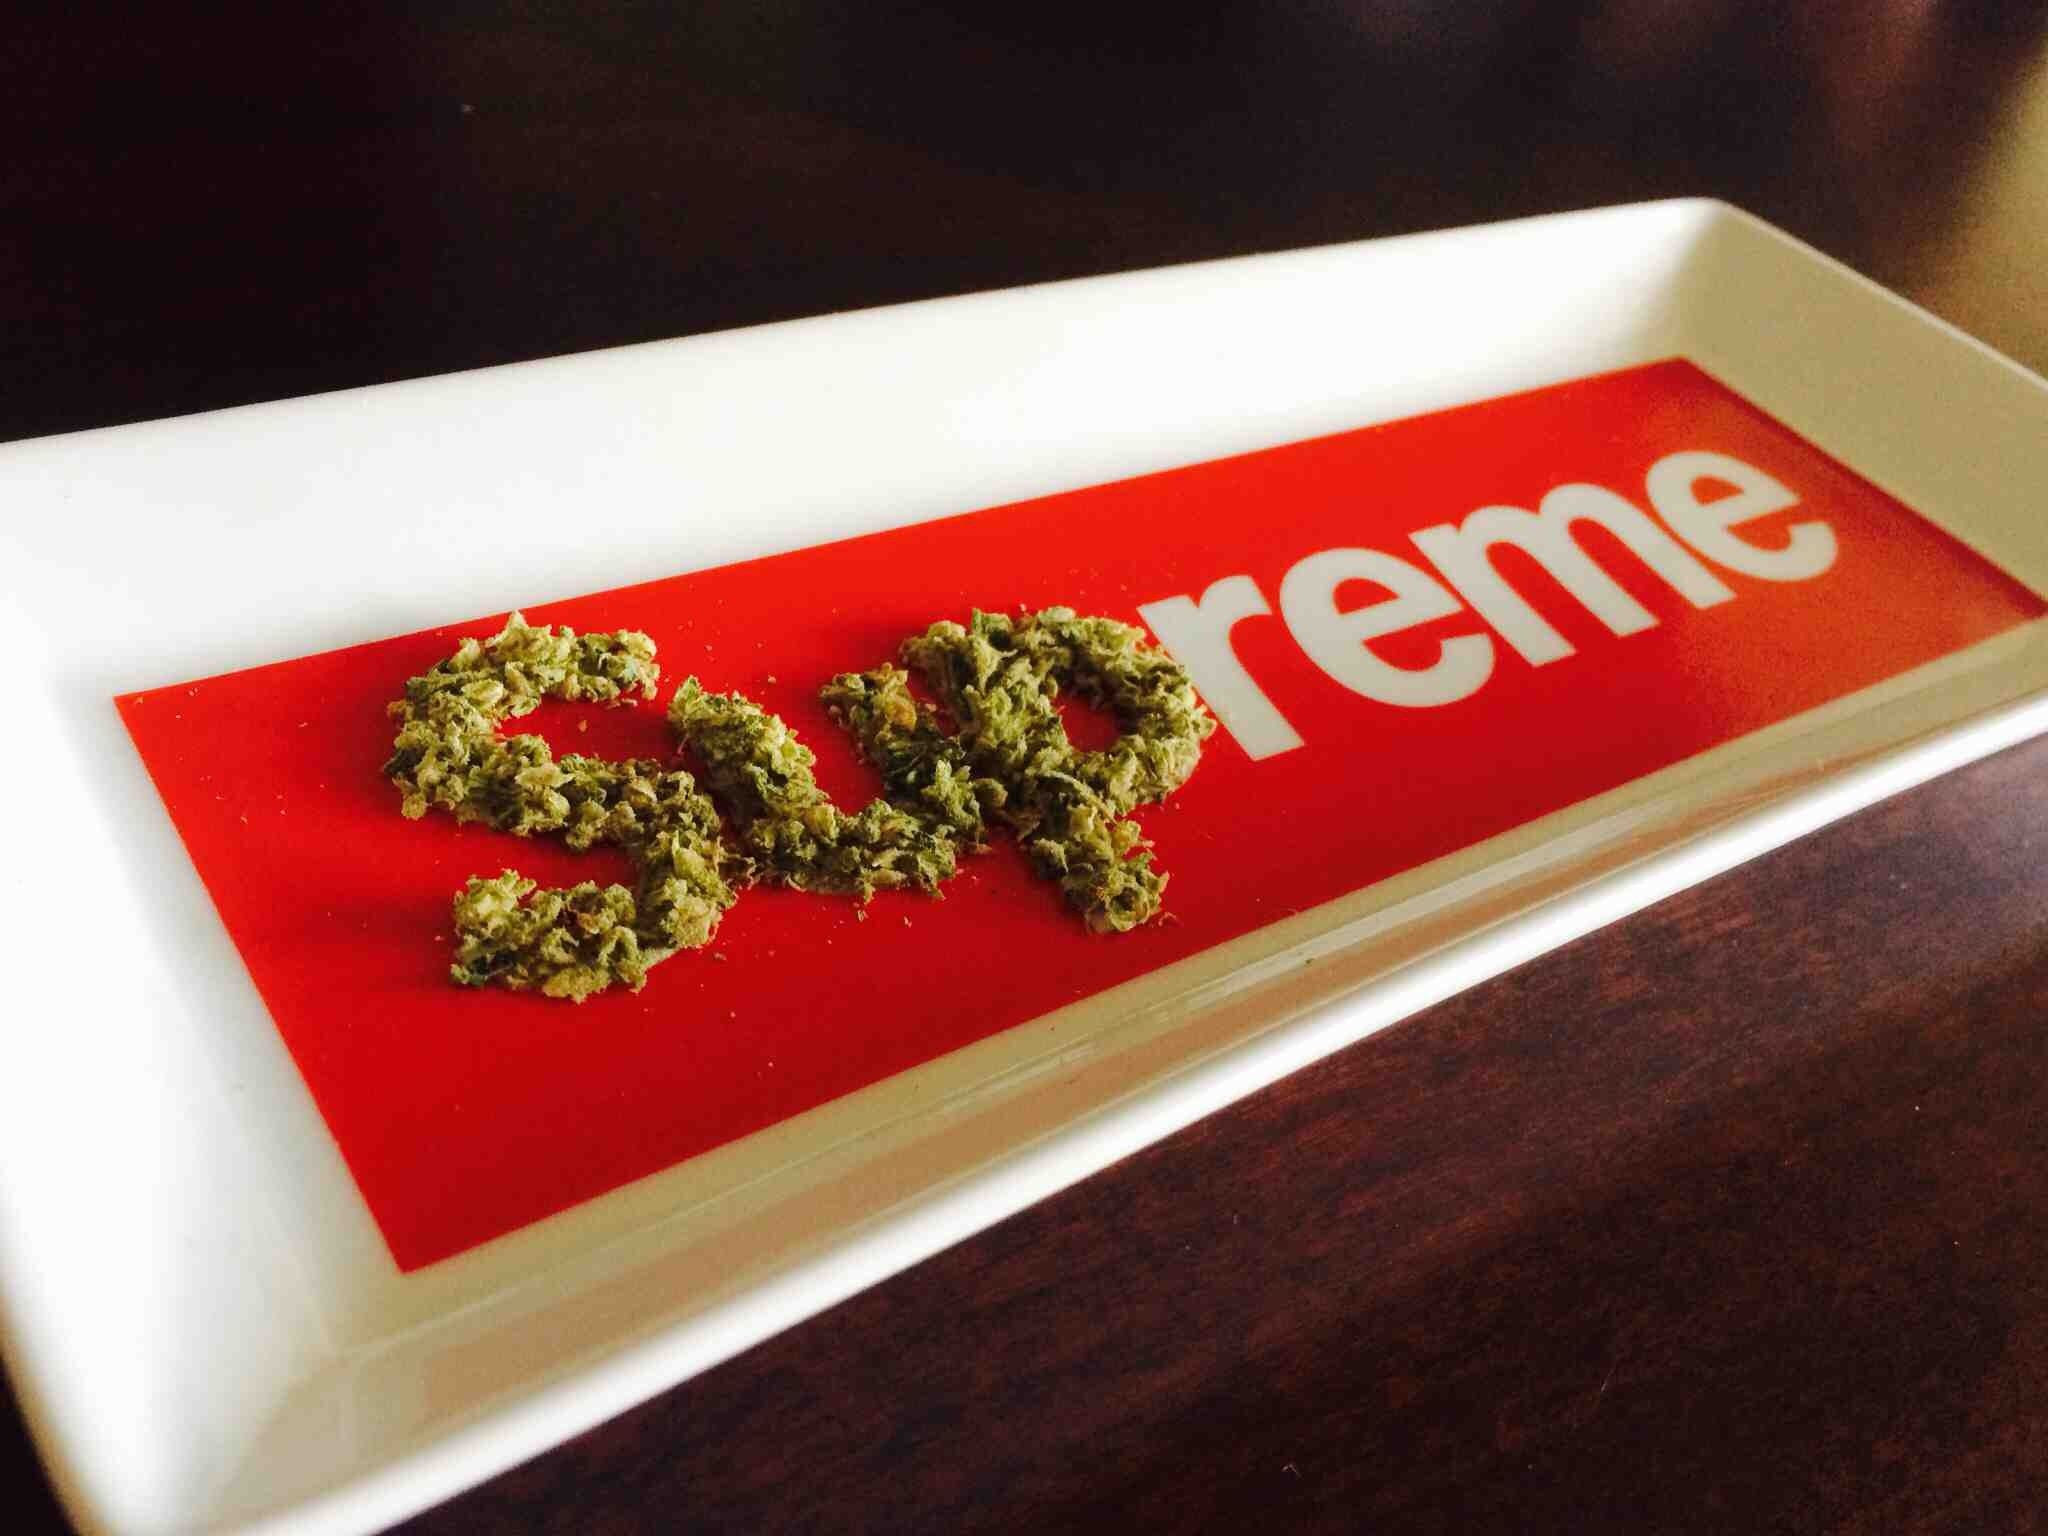 2048x1536 supreme weed wallpaper wallpapers trendingspace